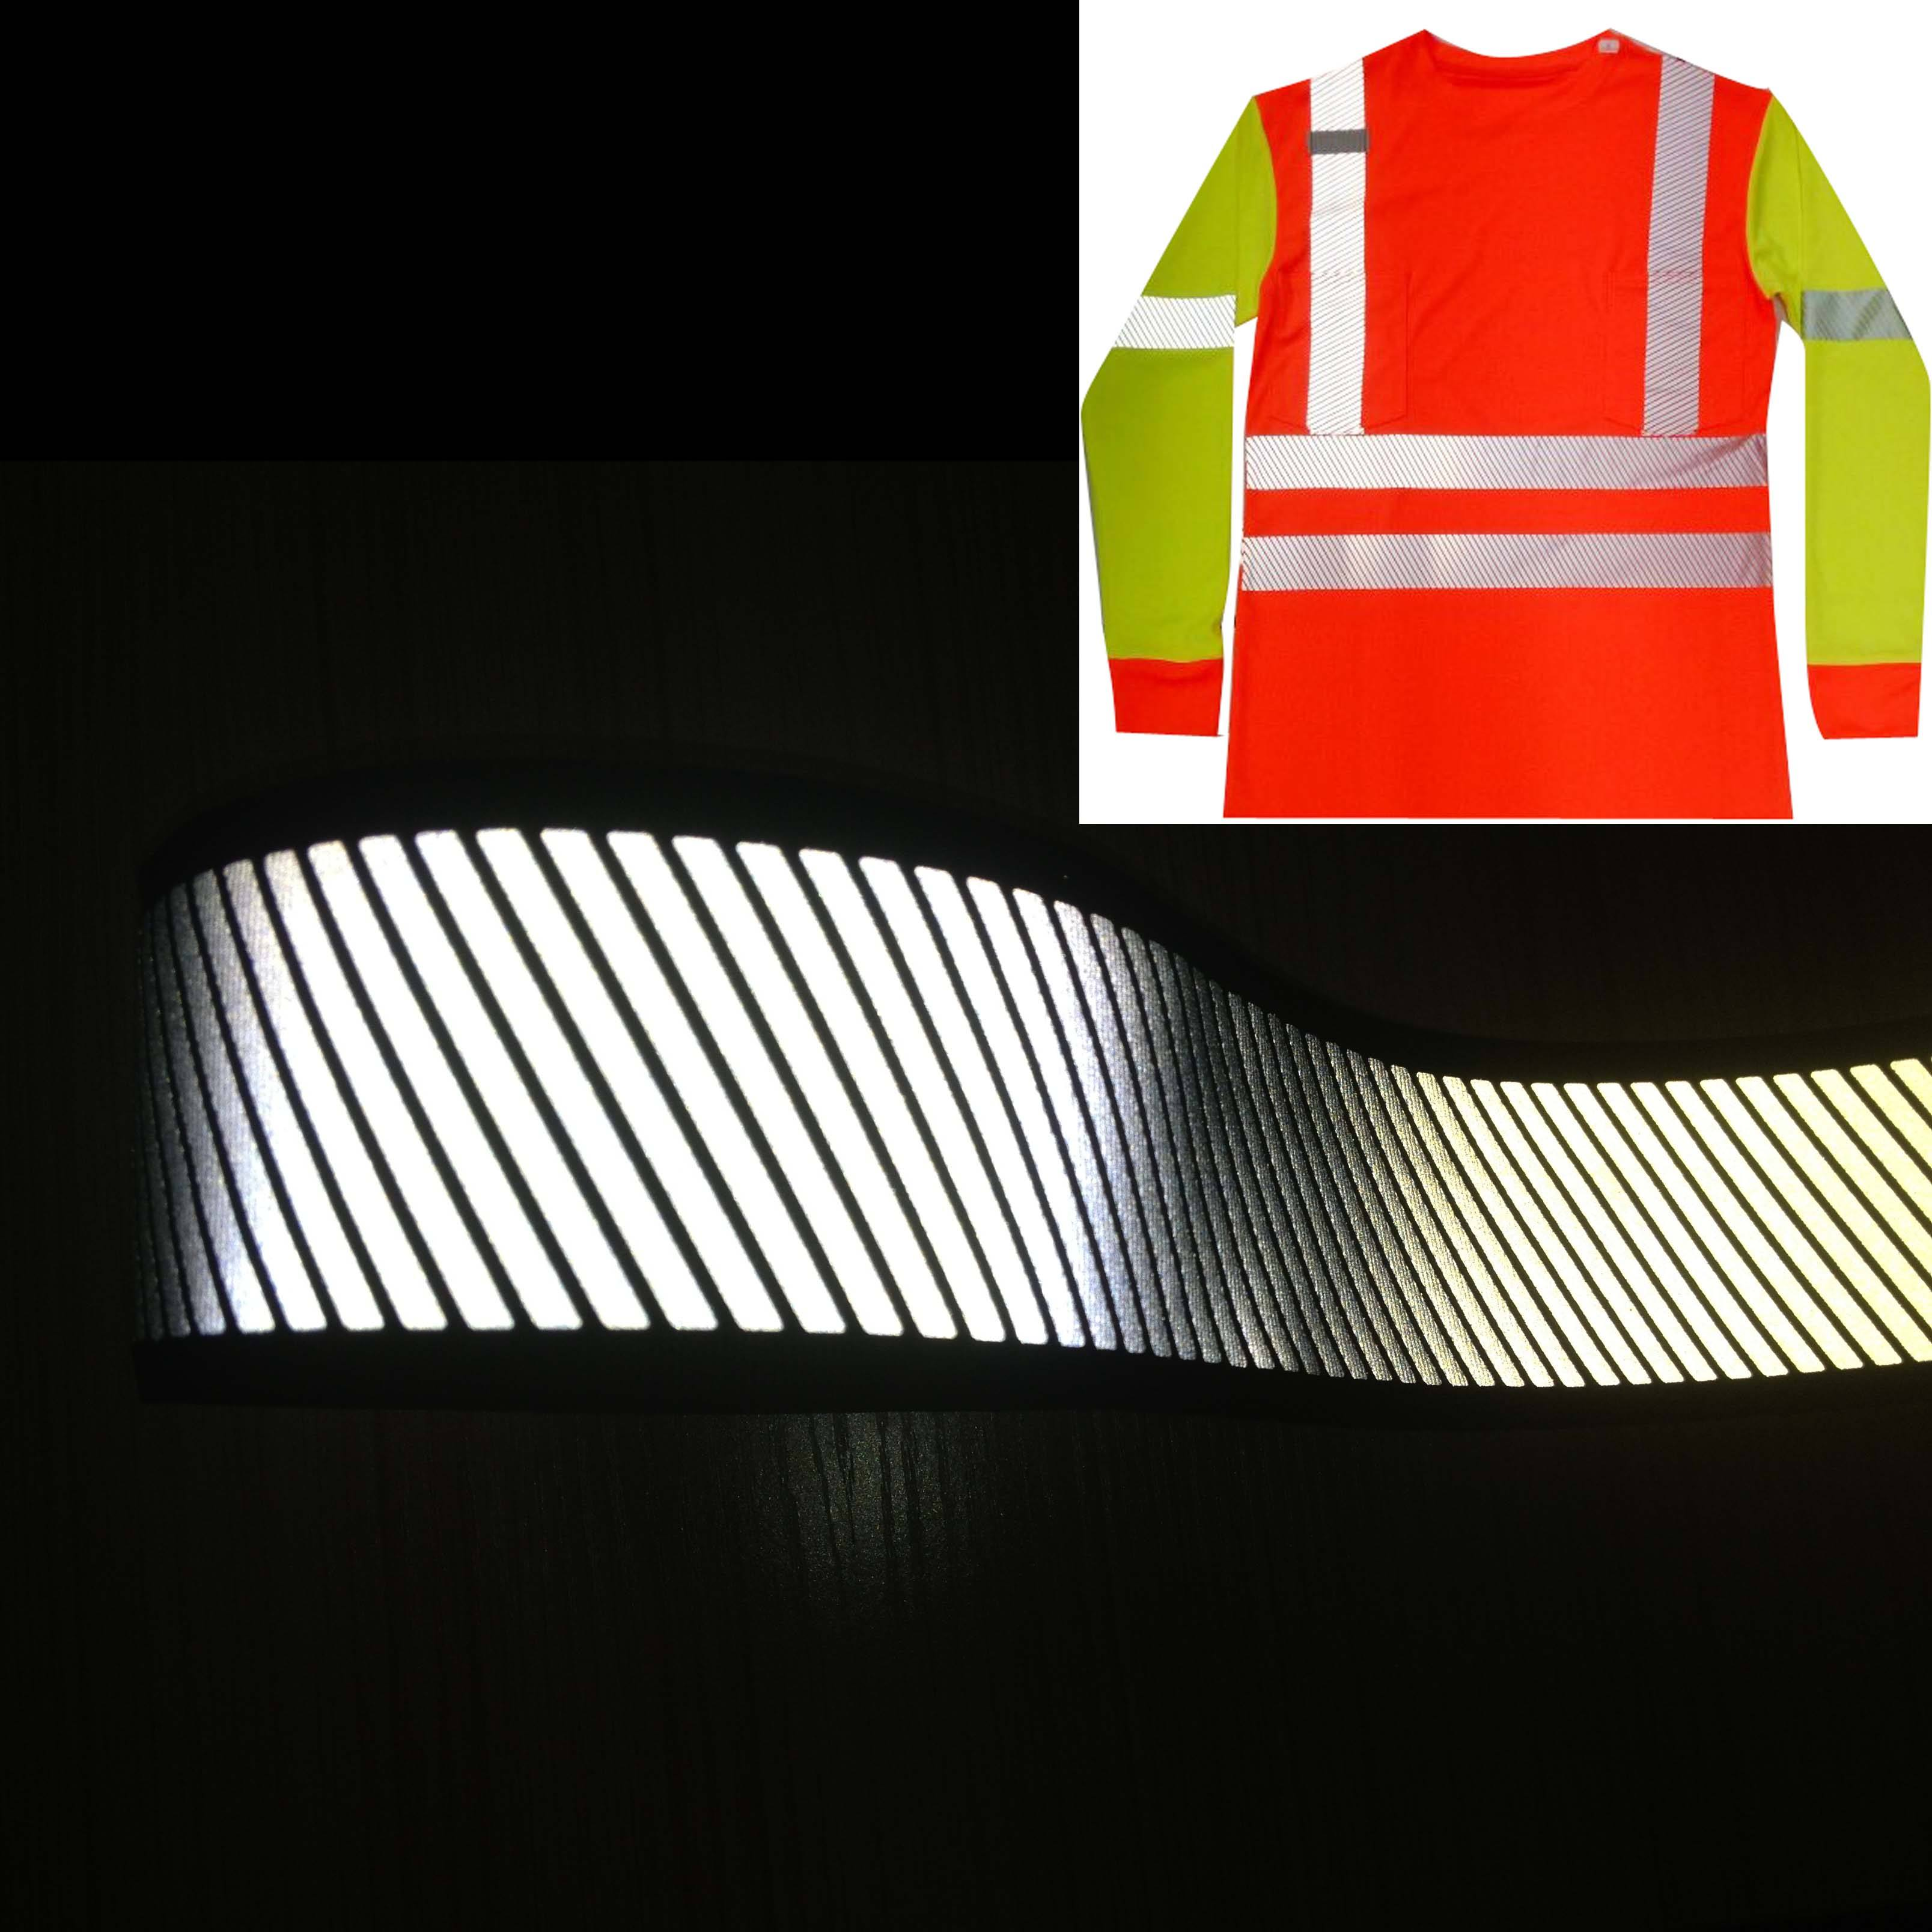 Iron on Segmented Reflective heat transfer tape/ Reflector tape for clothing